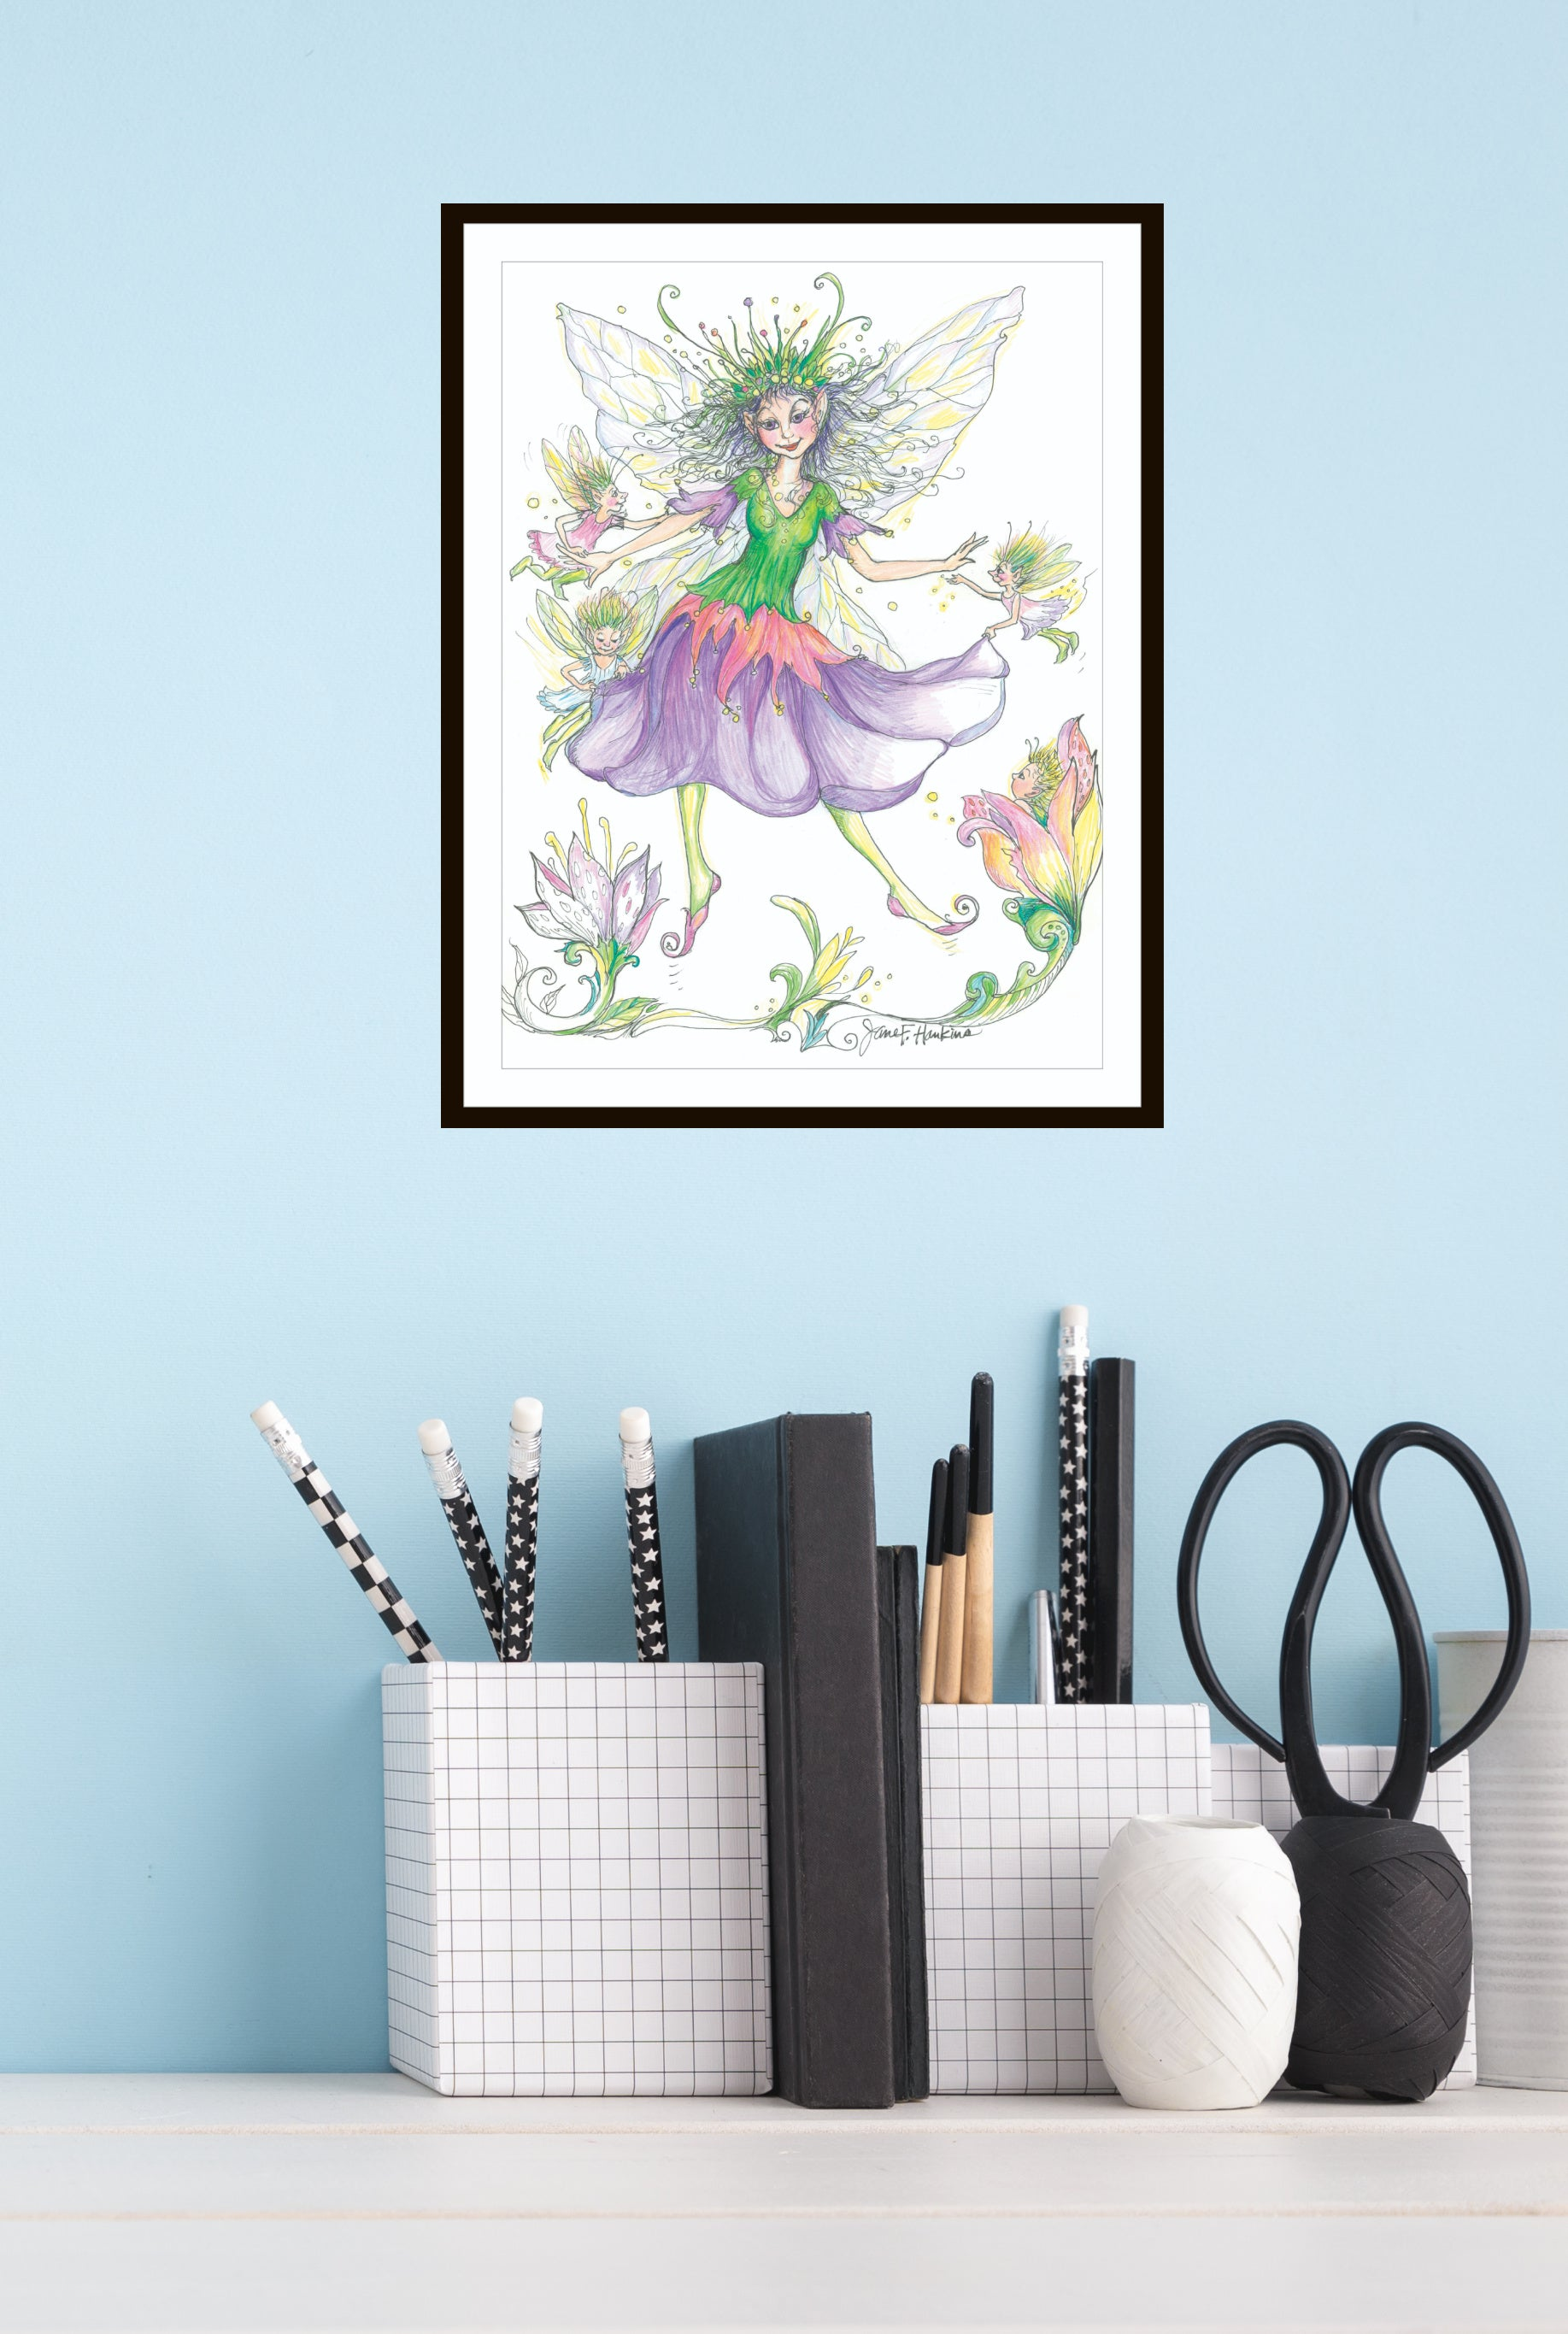 Print of Pixie's Fairy by Jane F. Hankins